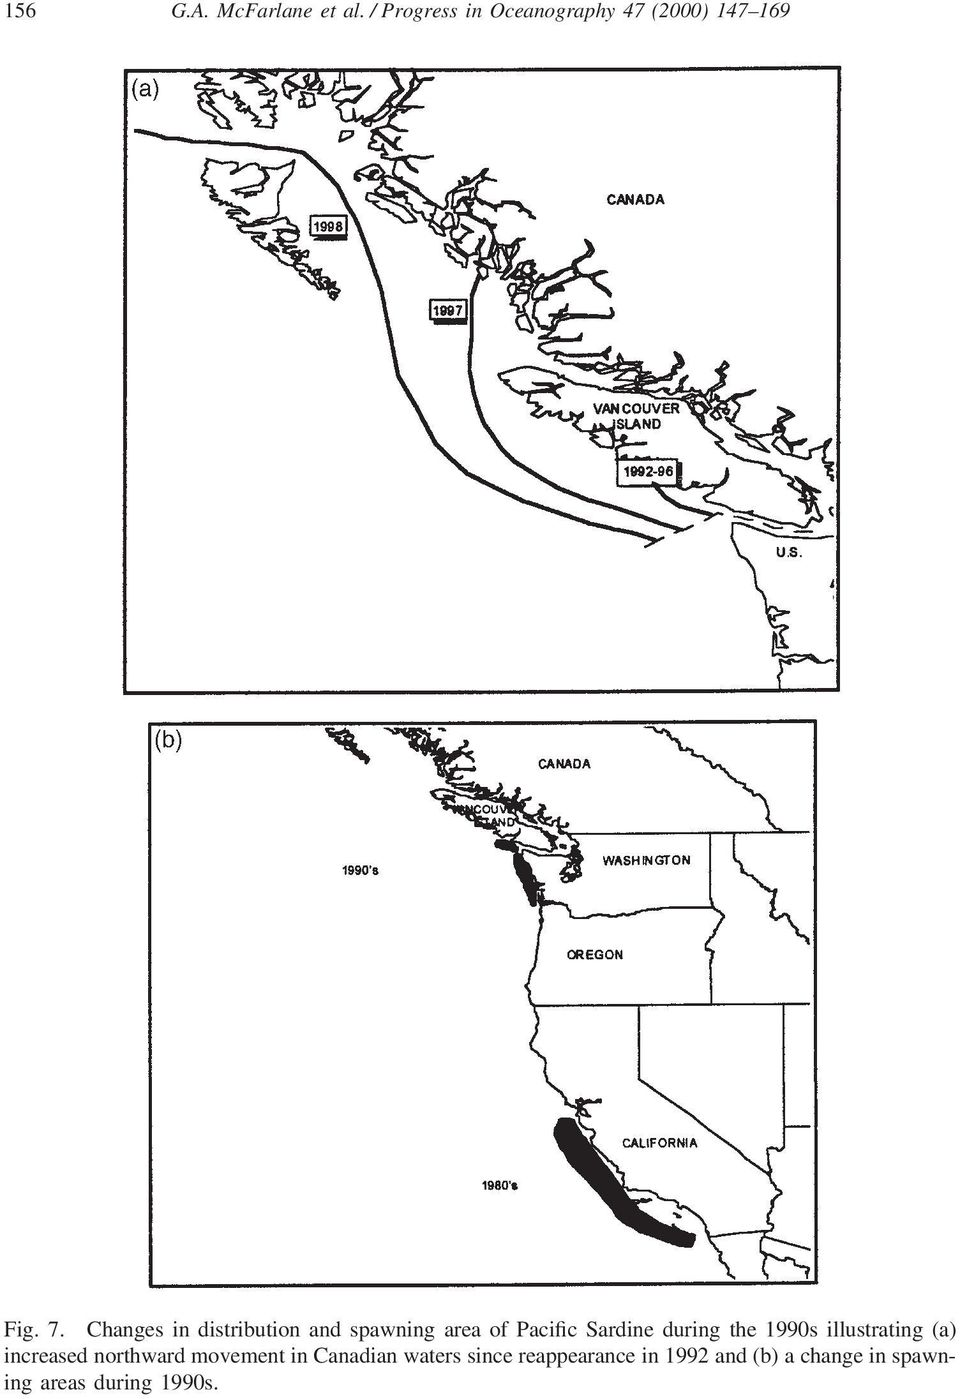 1990s illustrating (a) increased northward movement in Canadian waters